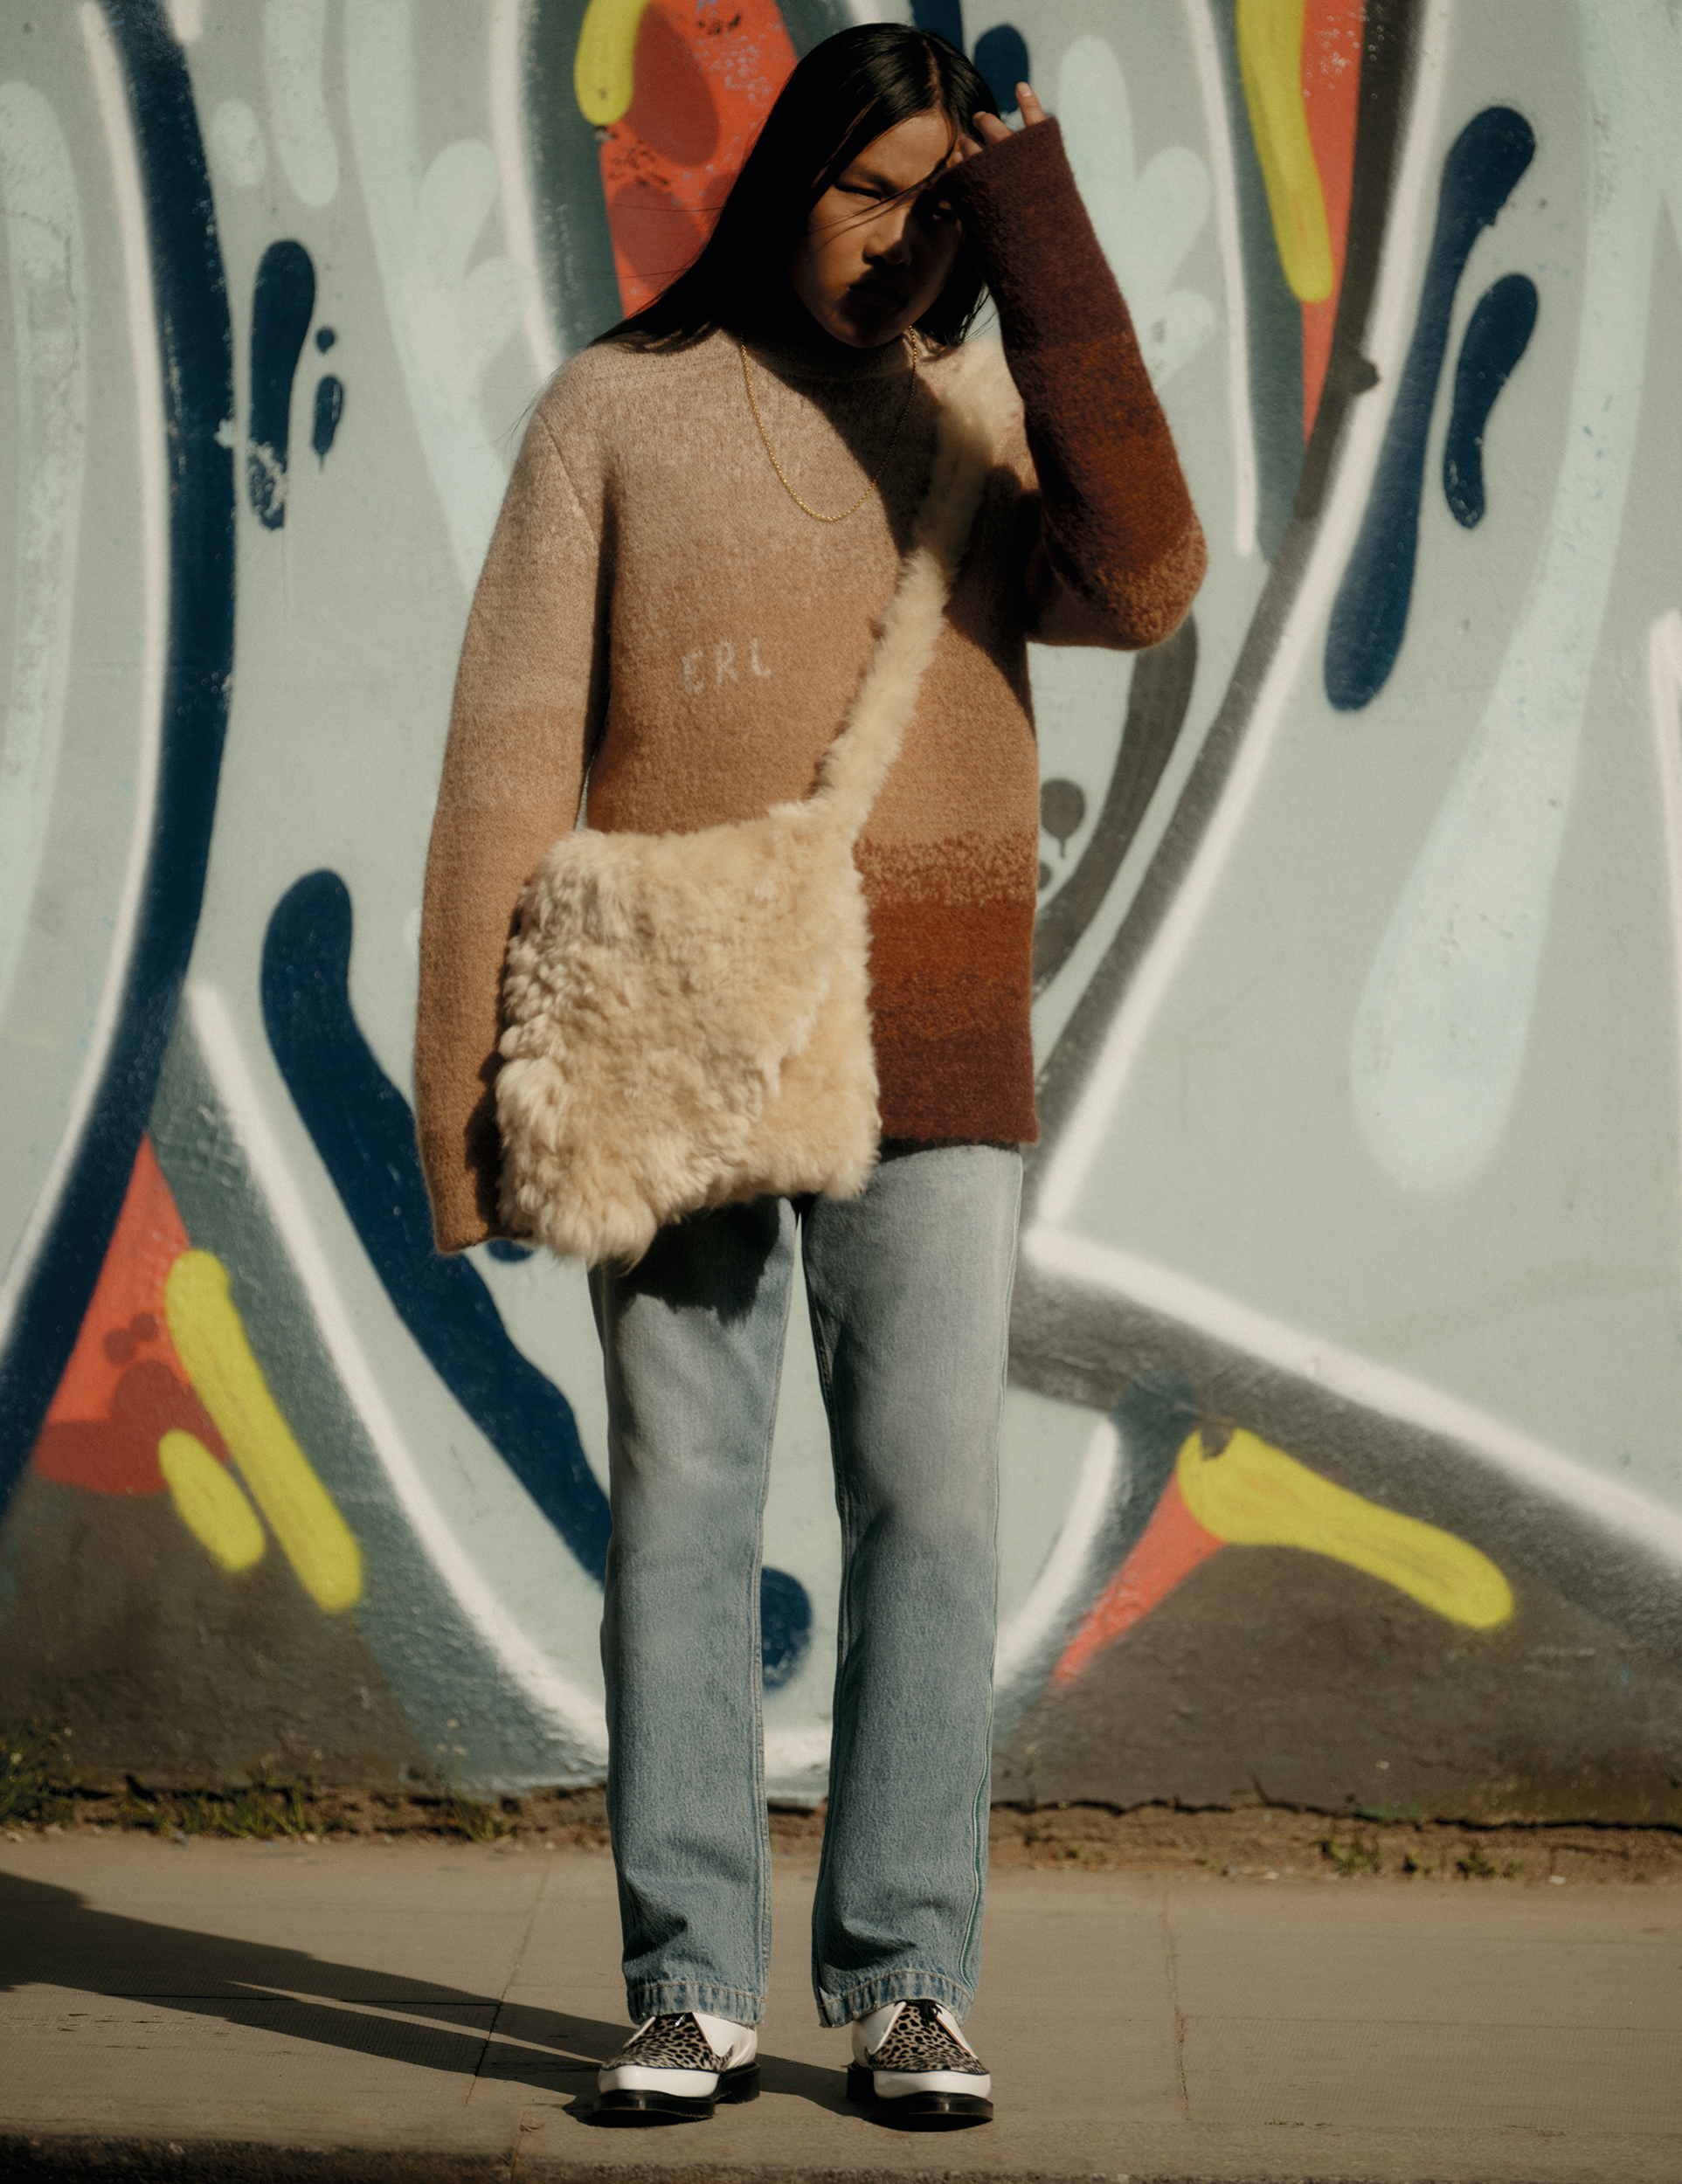 a model standing against a graffiti wall wearing a sweater, jeans and a fluffy shoulder bag